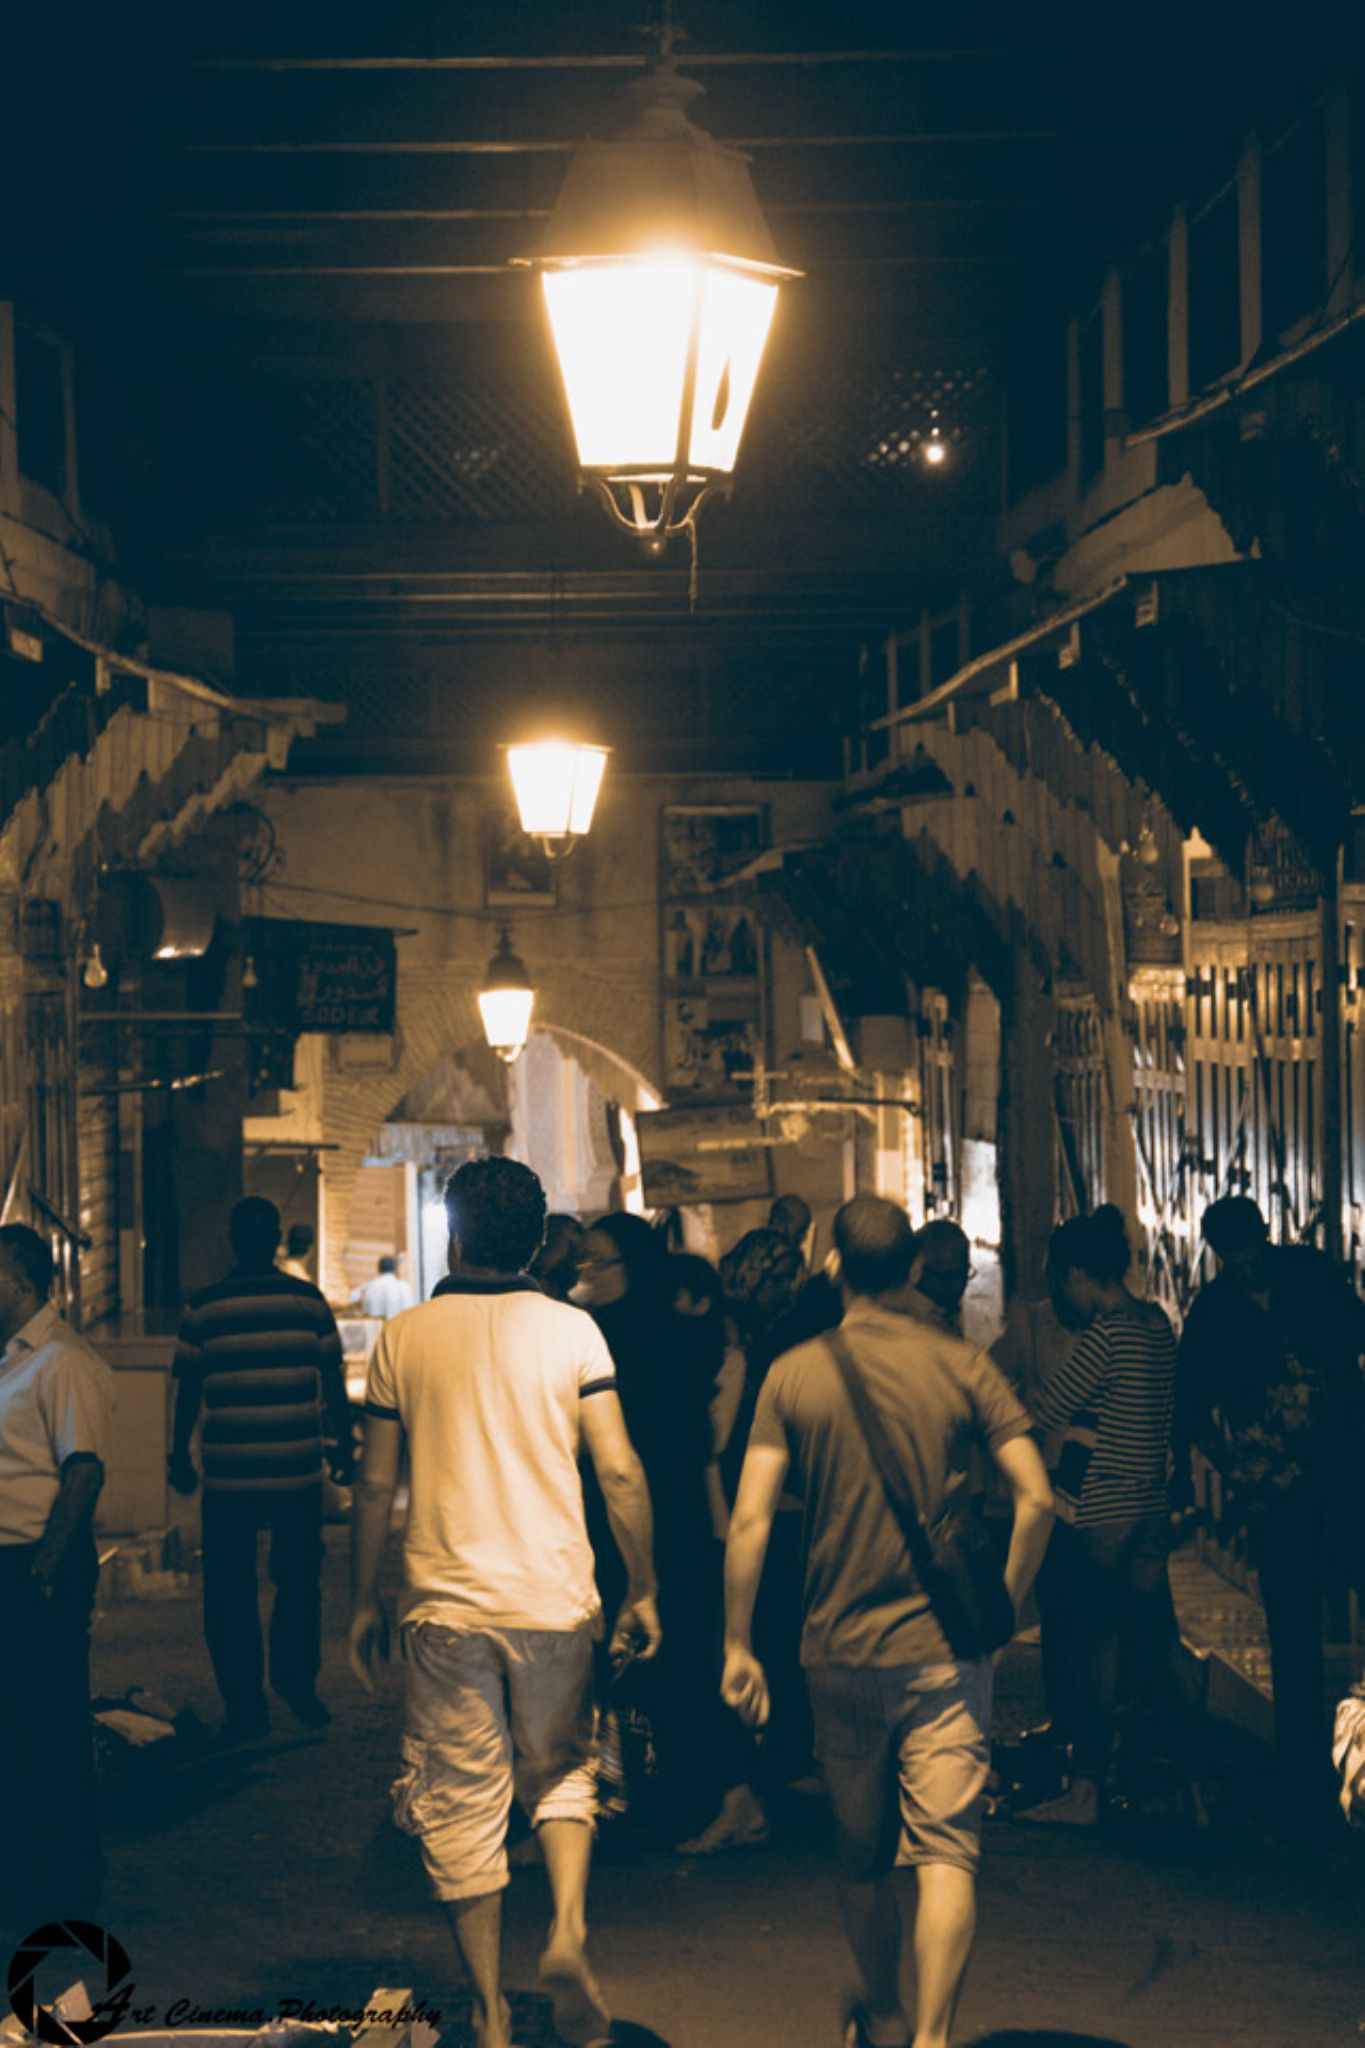 Traditional souq at the ancient downtown in fes by Najib Khayati